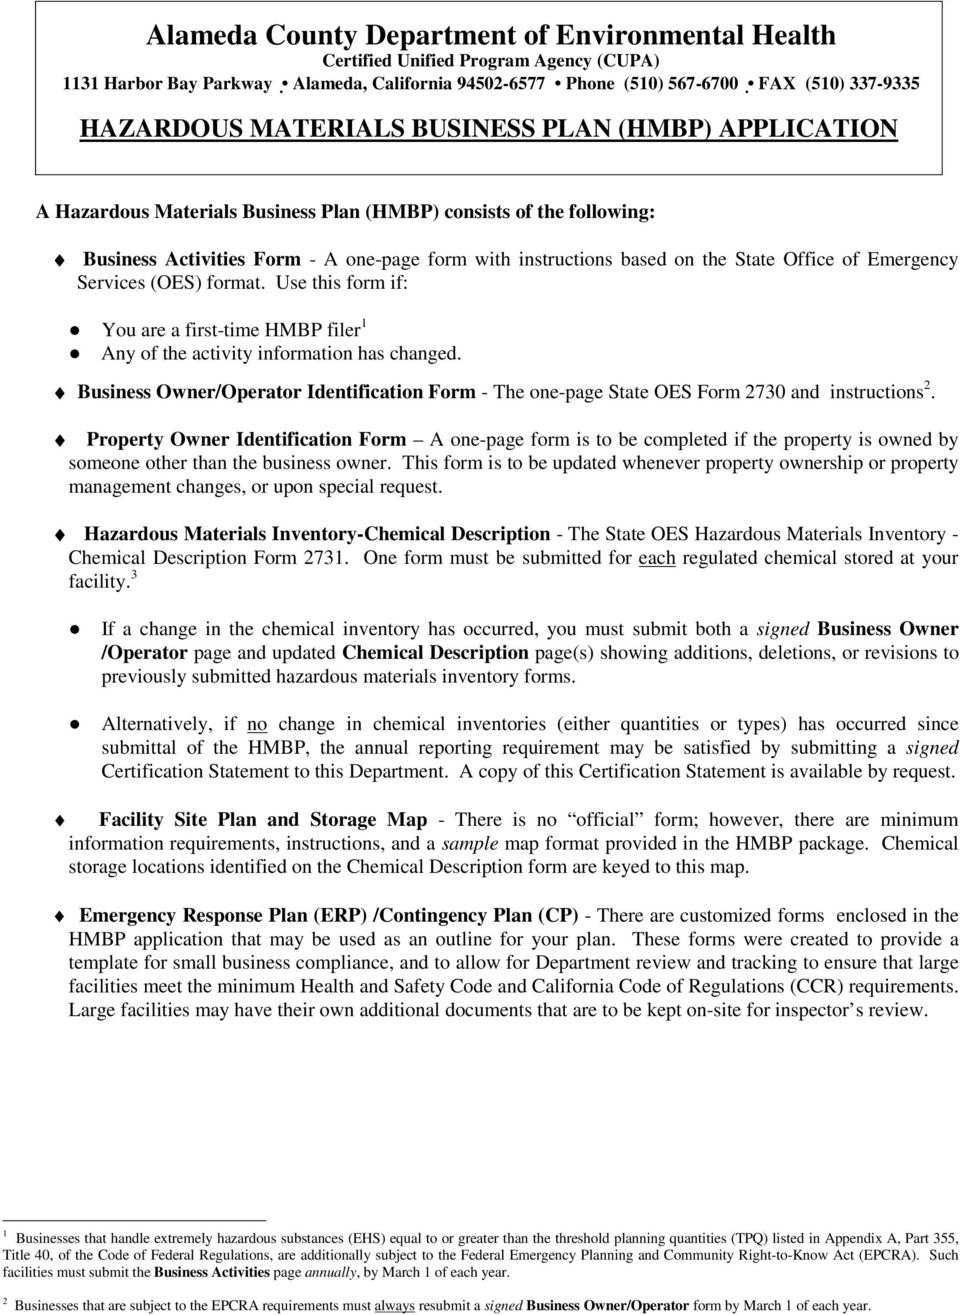 hazardous material business plan hmbp reporting requirements